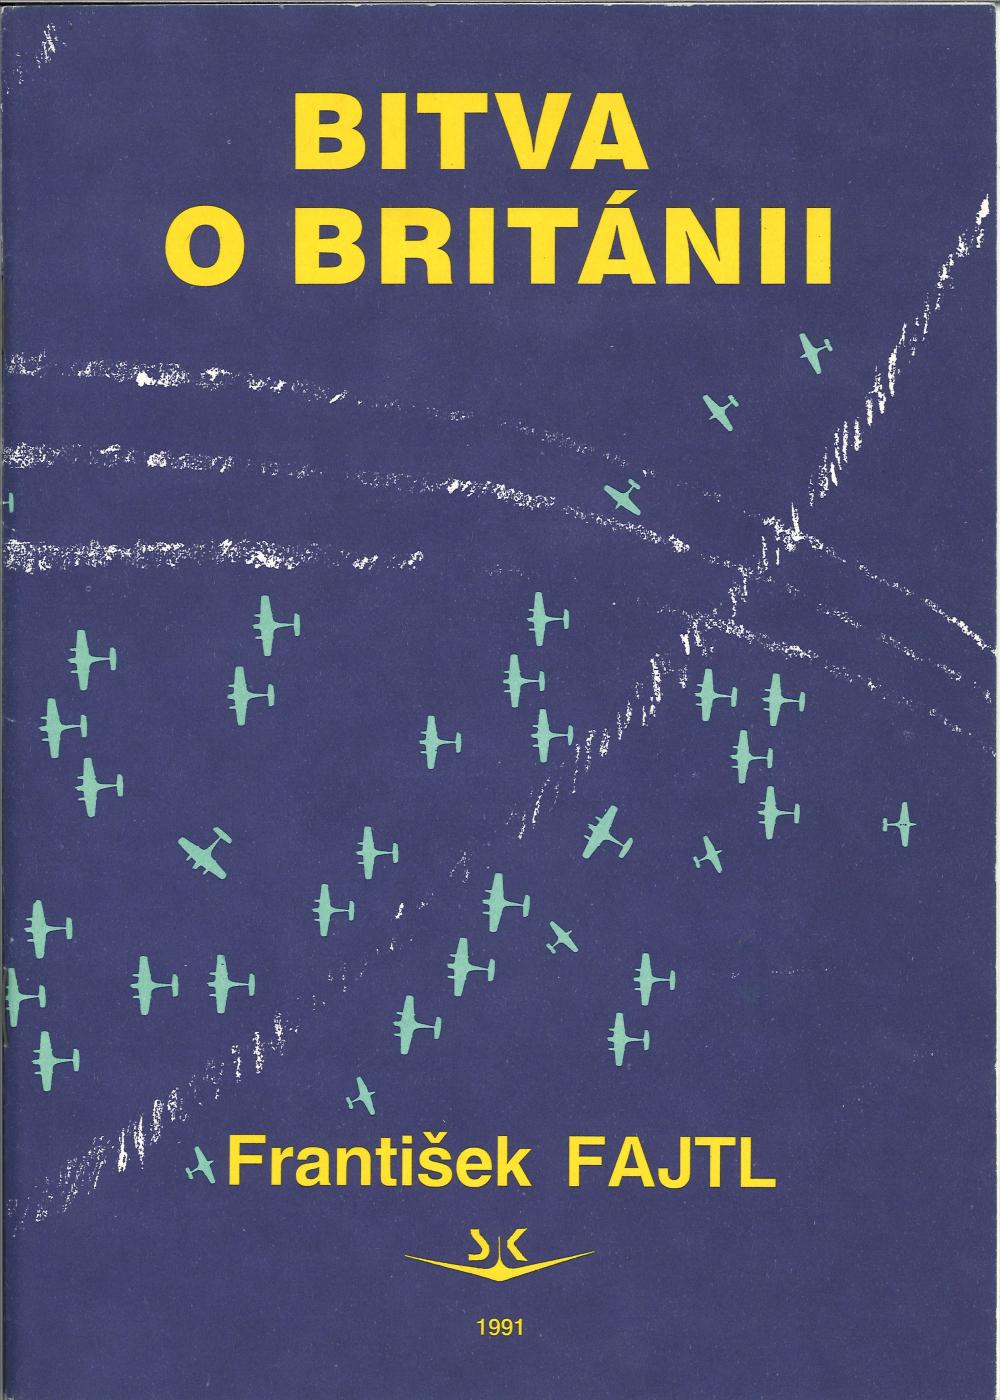 Polish Written Battle of Britain booklet produced by Frantisek Fajtl in excellent condition, 64